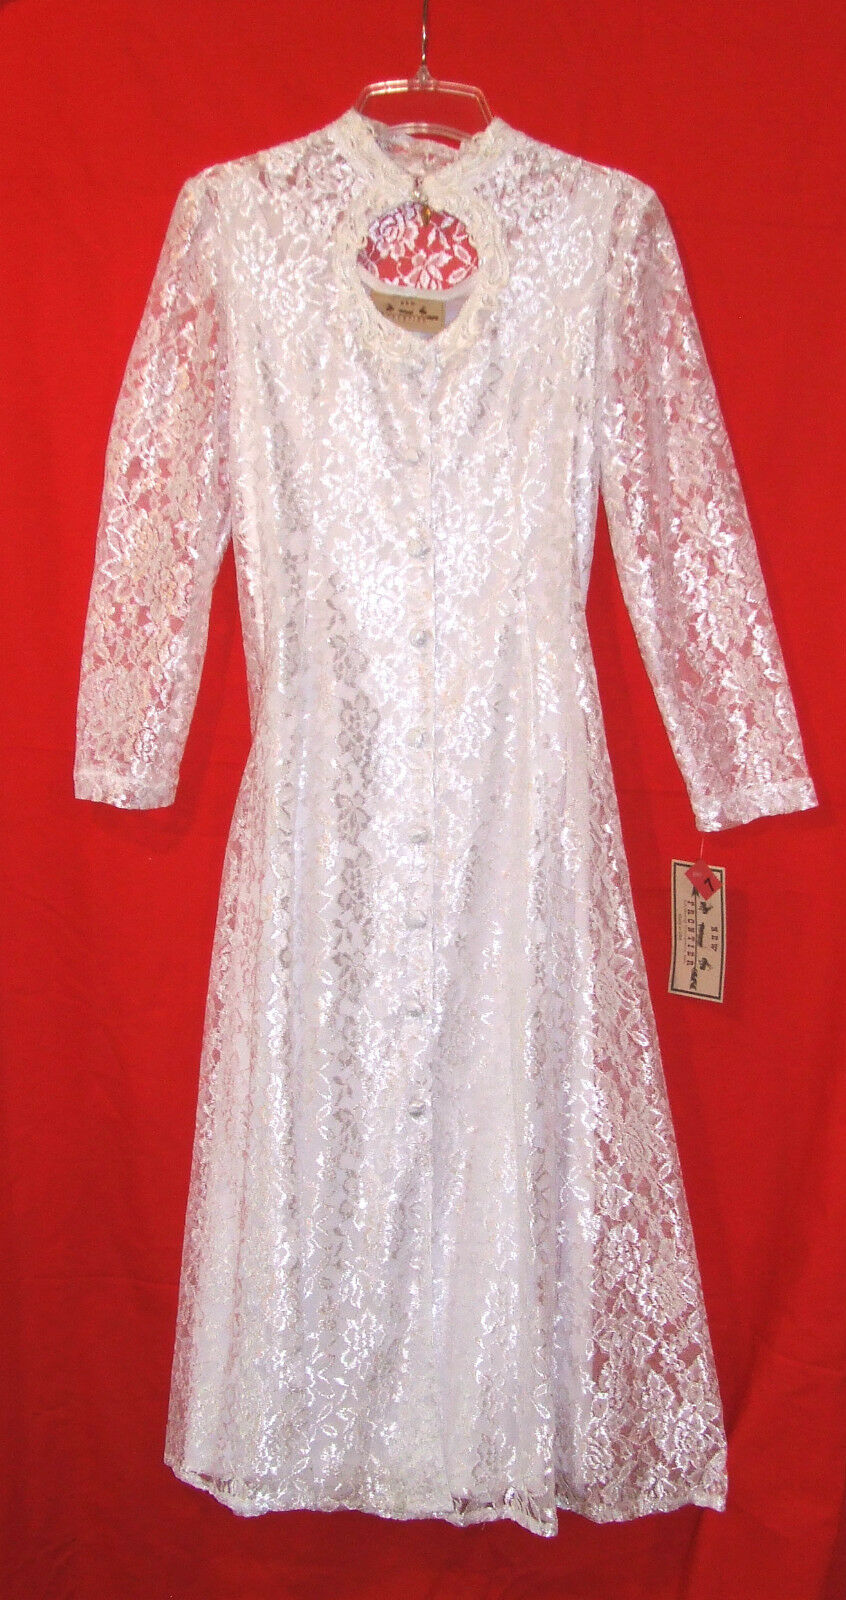 Ladies Western Wedding Dress White Lace New Gorgeous Party 7 11 13 Authentic 162